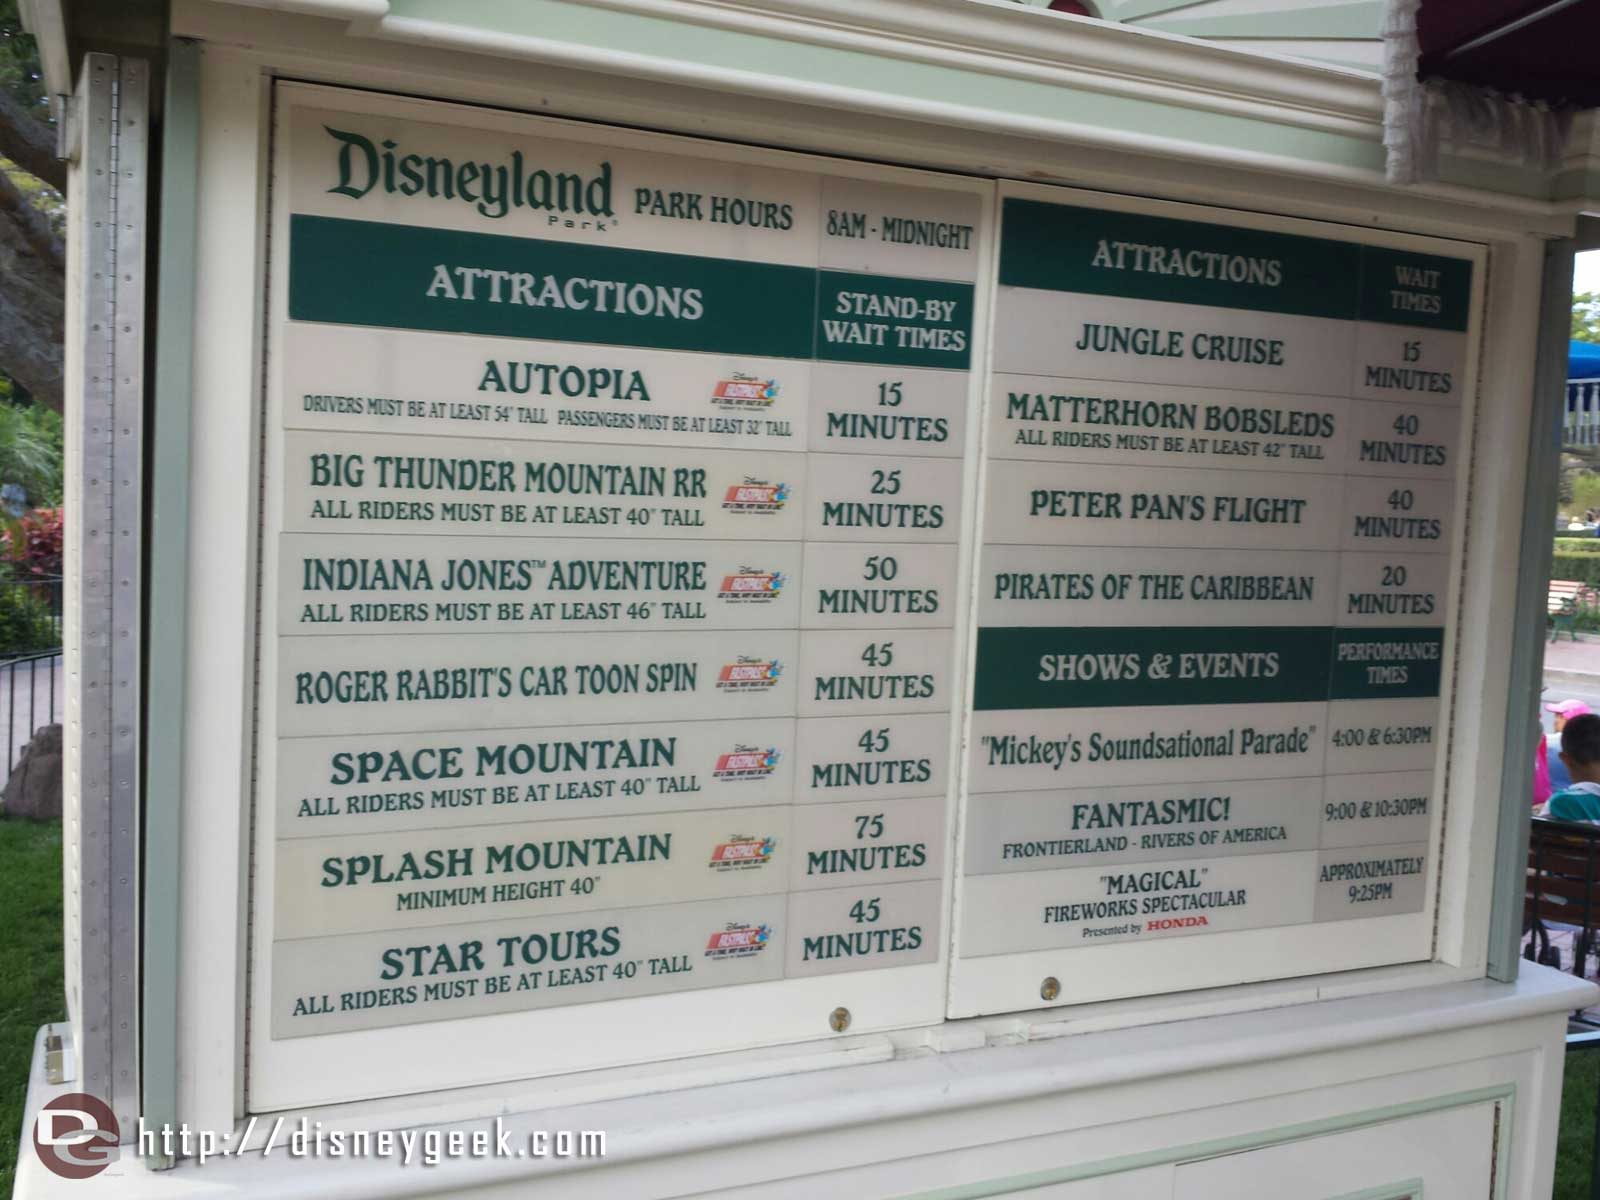 #Disneyland wait times at 5:54pm